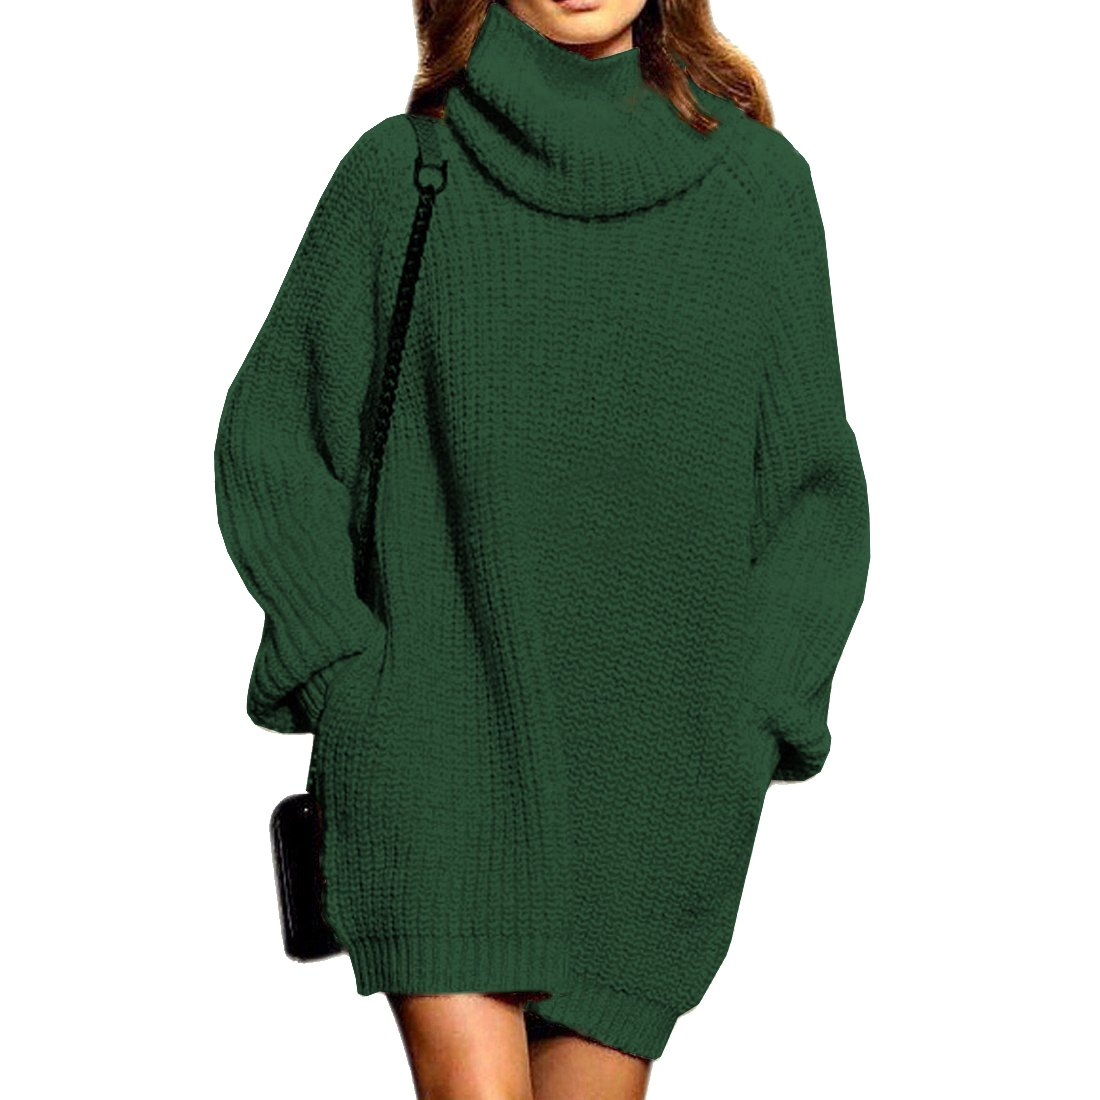 Women's Cashmere Knit Loose Turtleneck/Cowlneck Long Sweater Dress Pullover